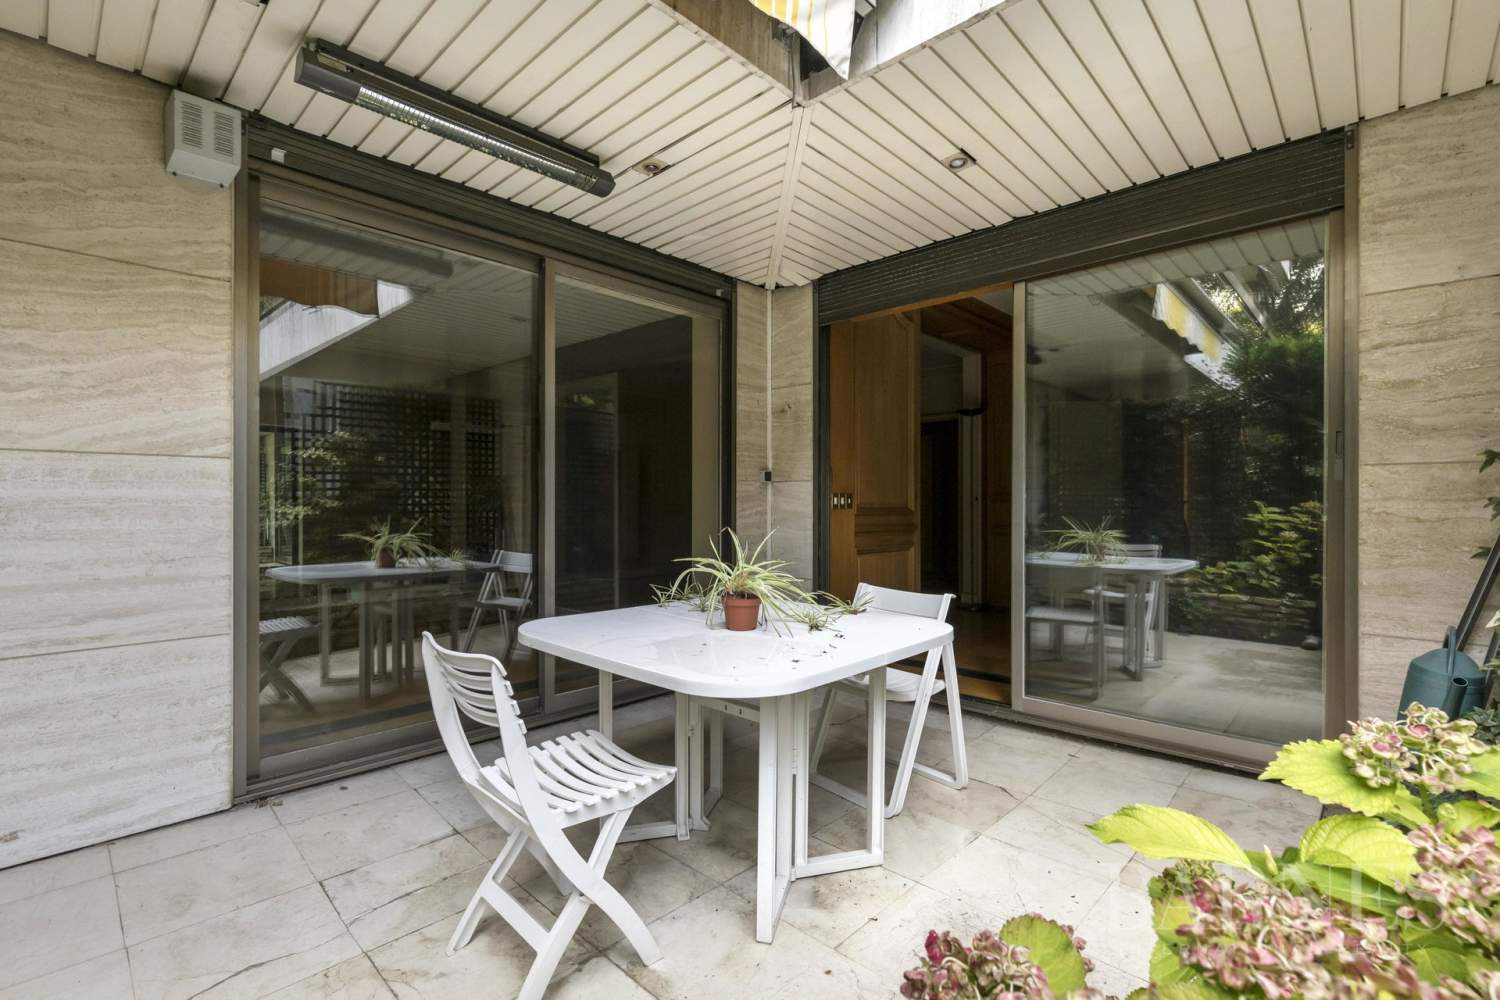 NEUILLY - CHATEAU - JARDIN et TERRASSE - 2/3 CHAMBRES - PARKING picture 5